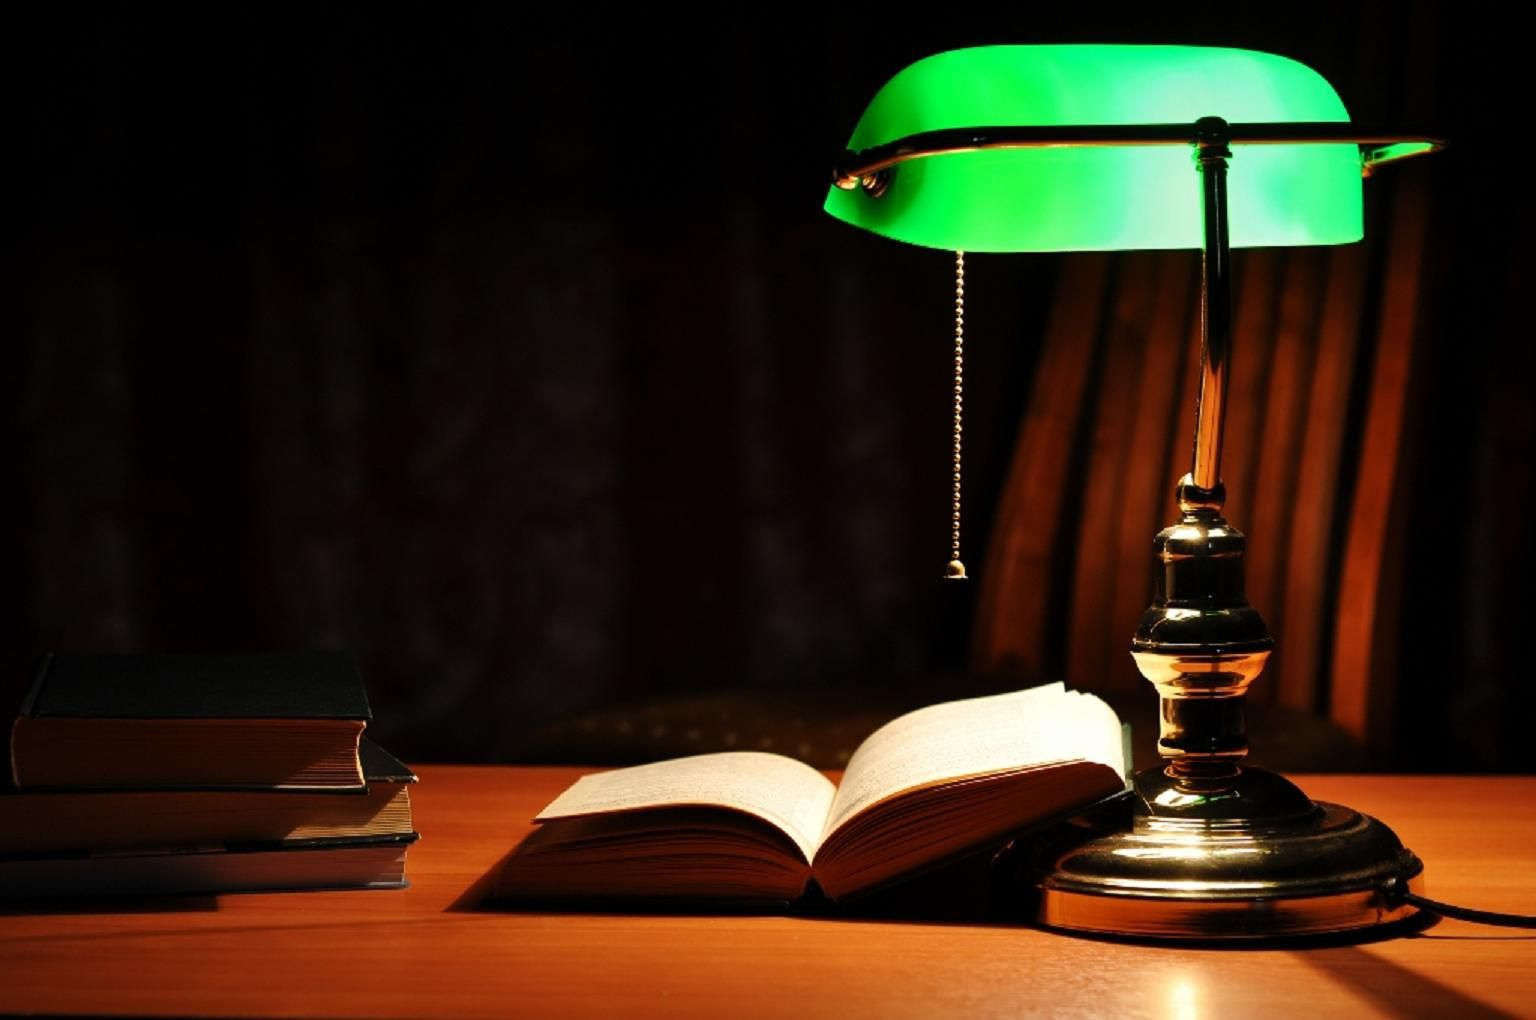 Pin By Alexandre Espindola On Mudbordy Bankers Desk Lamp Green Table Lamp Library Lamp